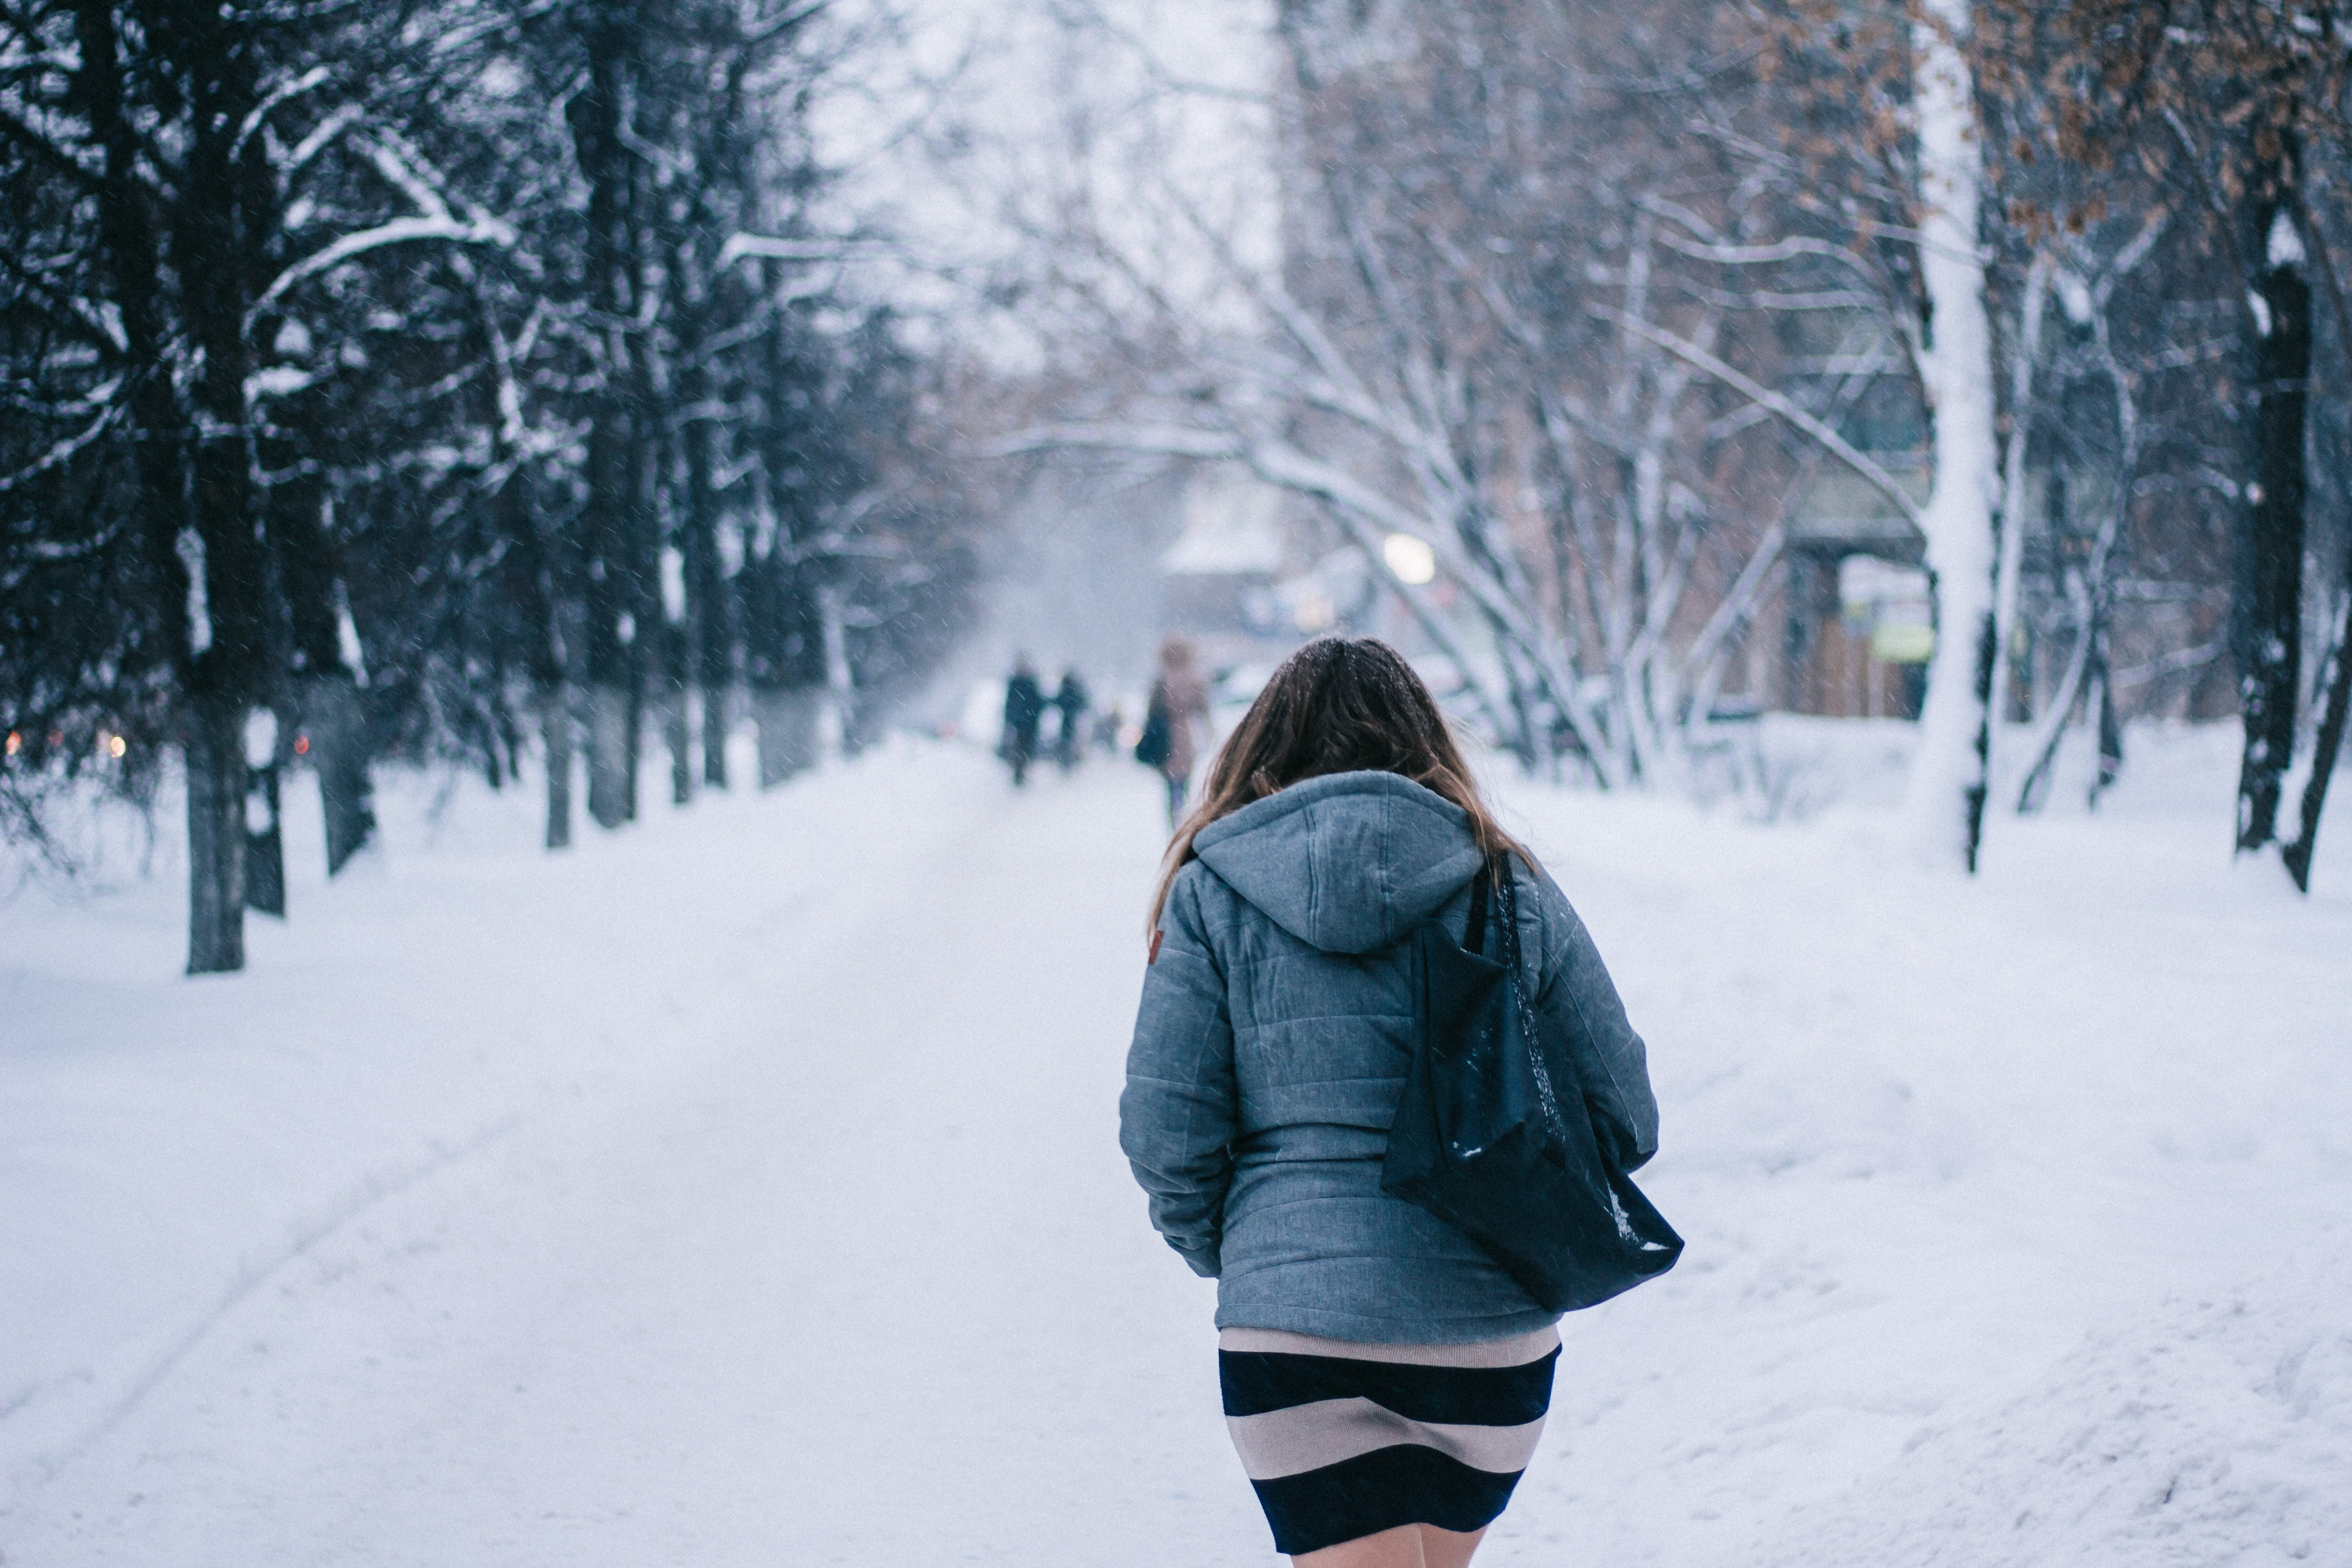 A woman wearing a skirt and jacket, walking through the snow on a treed road